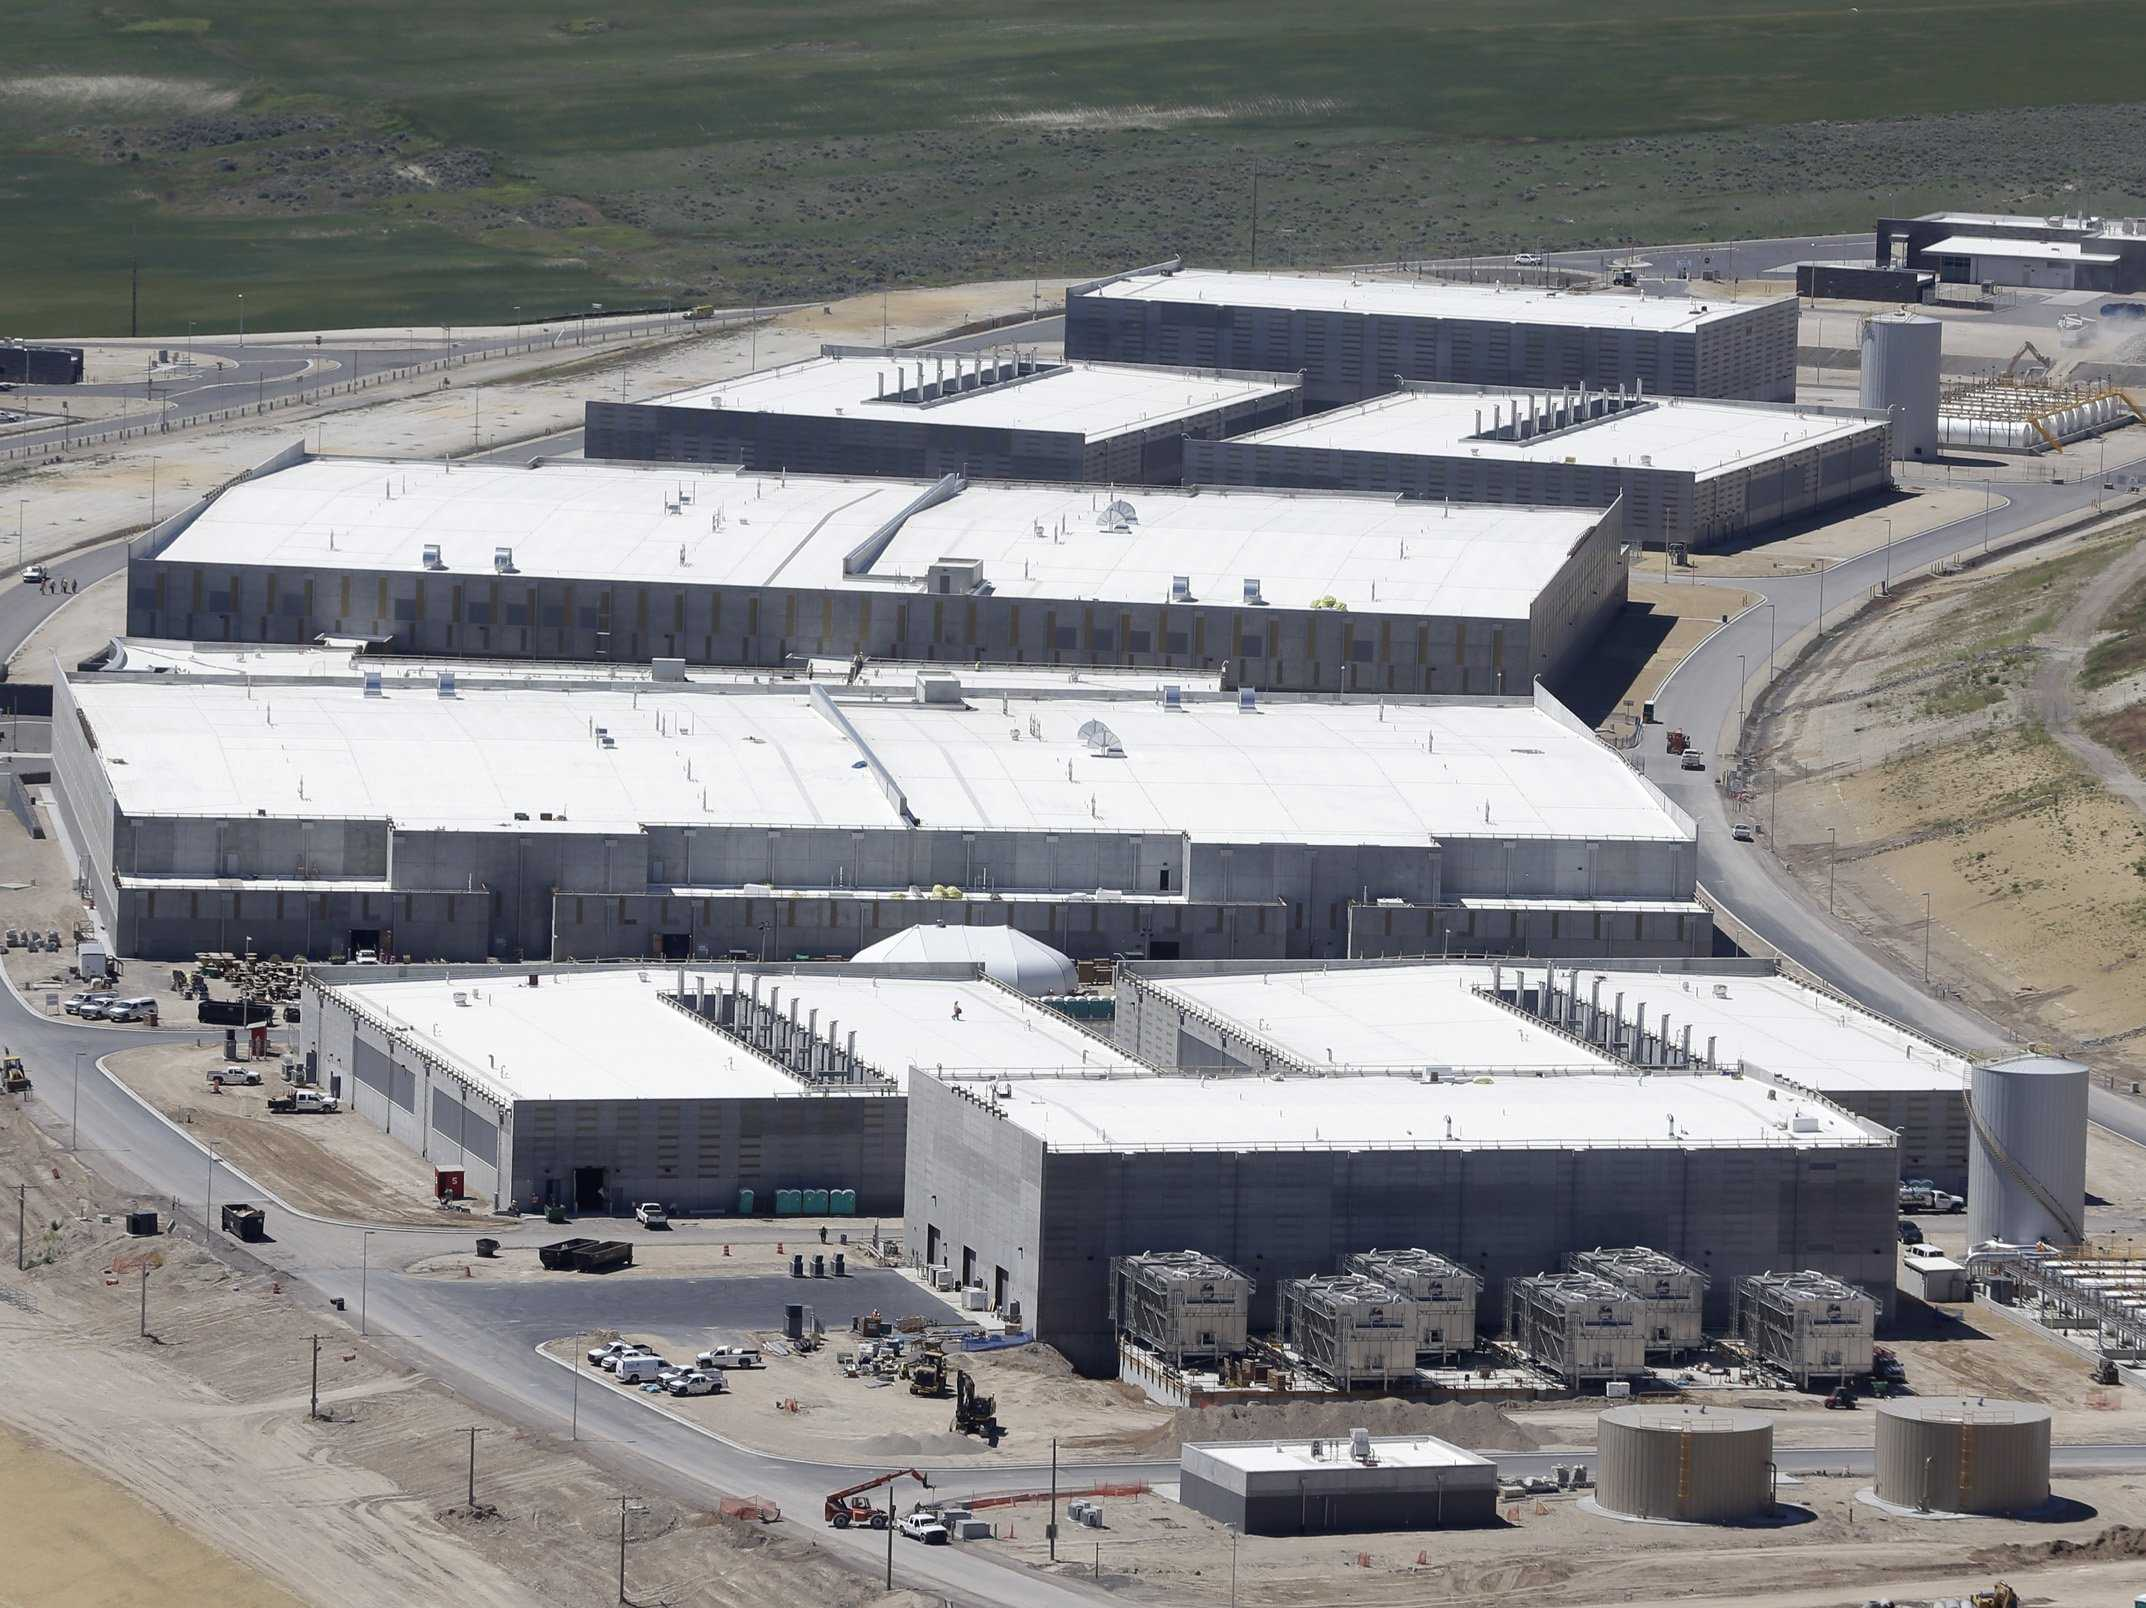 NSA Utah Data Center - 1.5 billion dollars - FREE World Bank capable